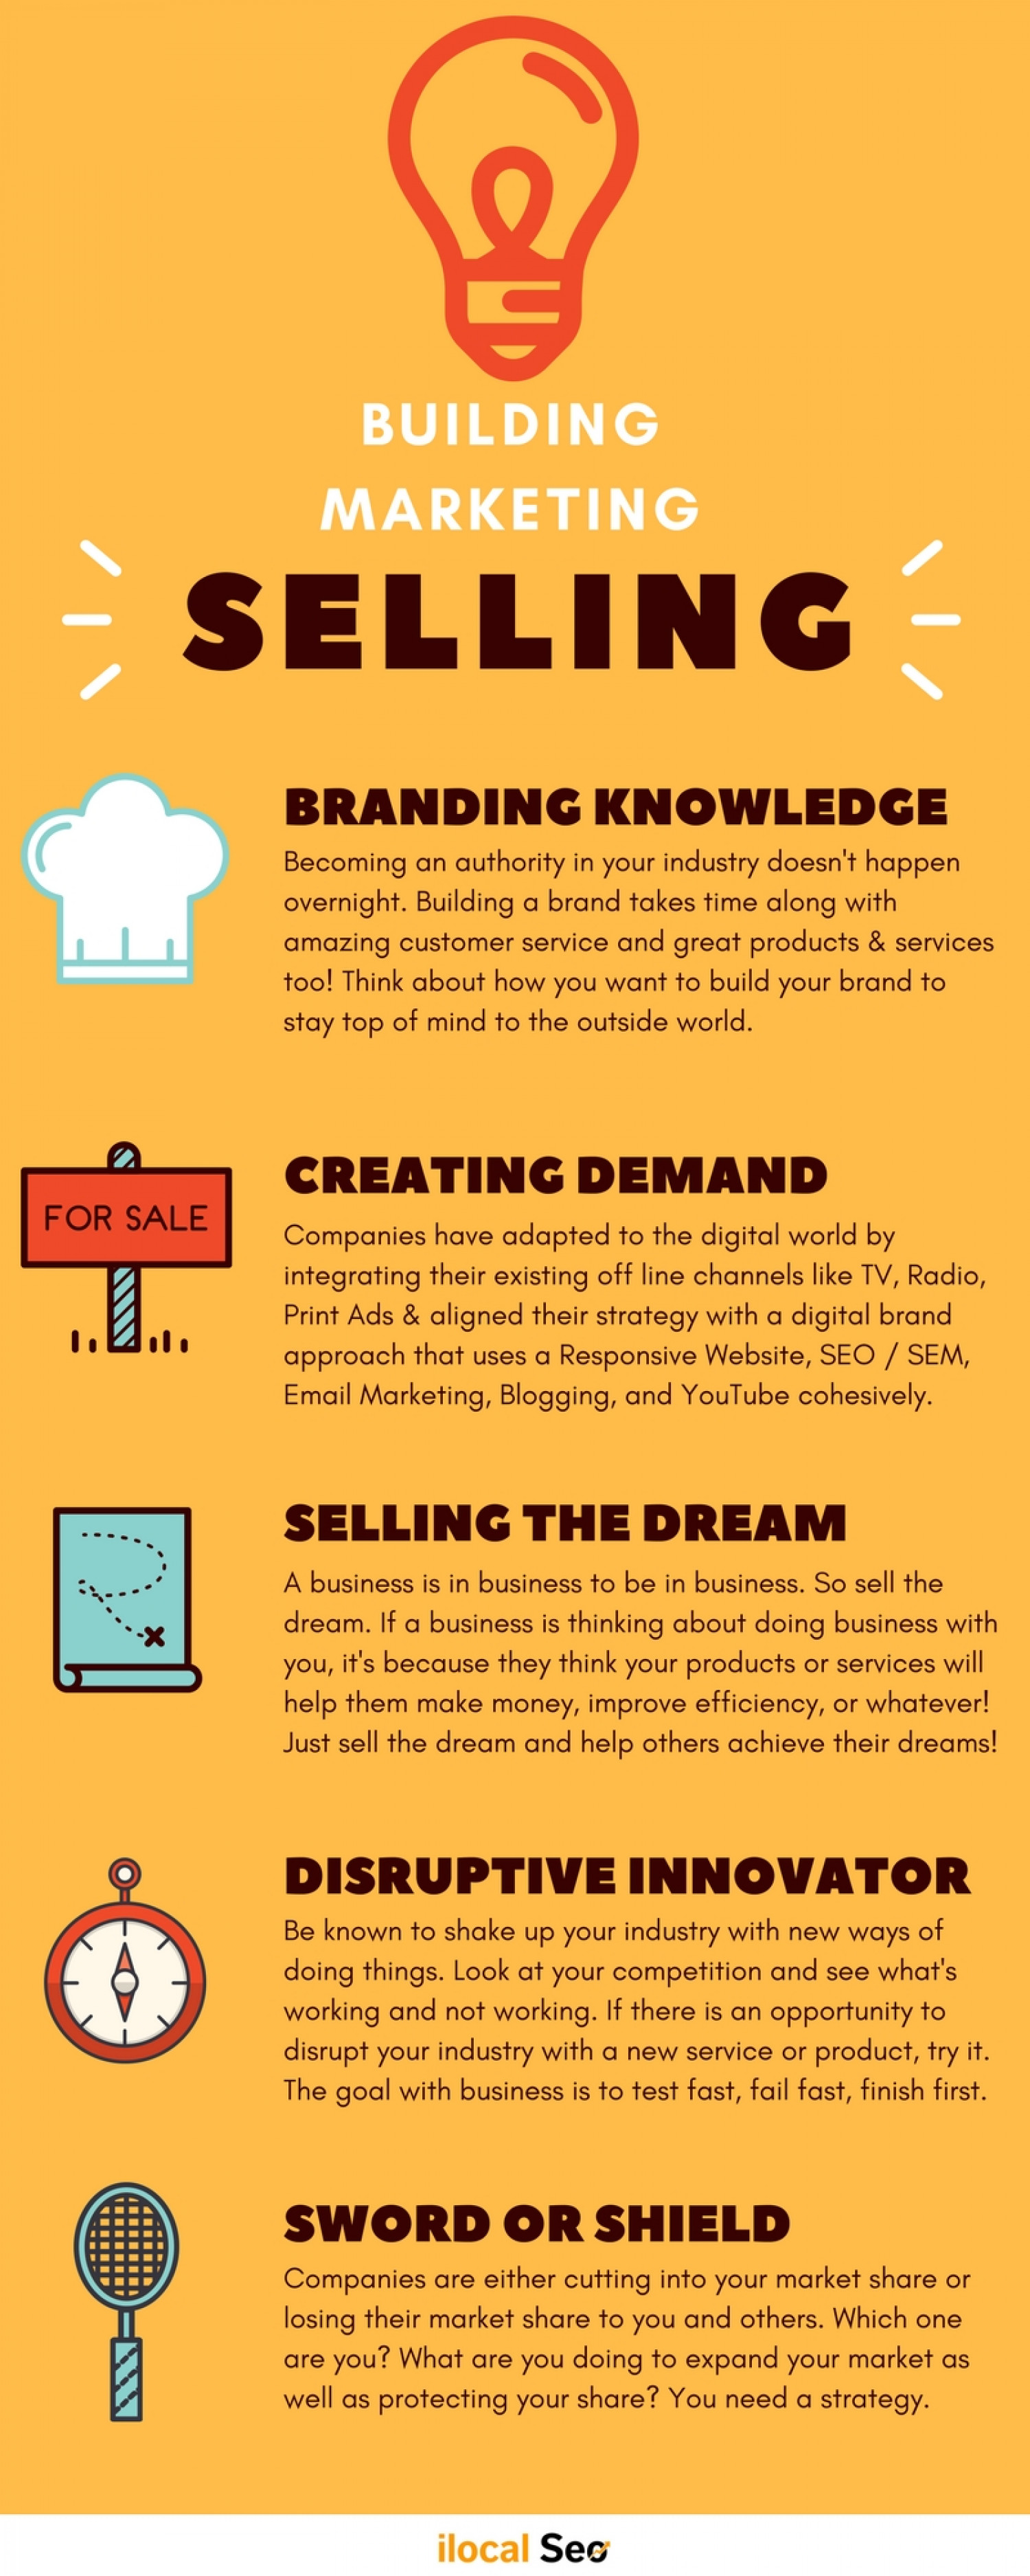 Building, Marketing, & Selling - 3 Pillars of Growth Infographic